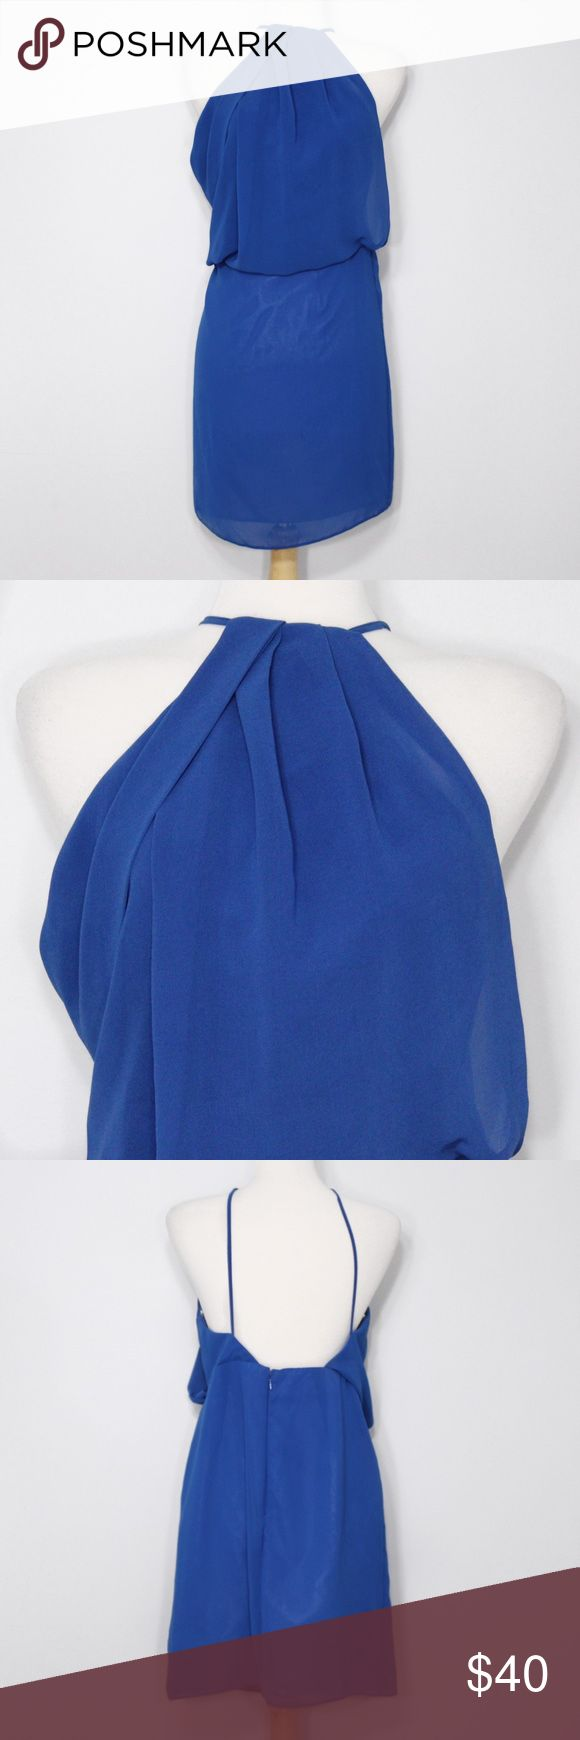 ASOS High-Neck Backless Chiffon Dress A chic dress in great condition! High-neck. Zippers up from back. Polyester. No holes or stains. Comes from a smoke free environment. Measurements to be added. ASOS Dresses